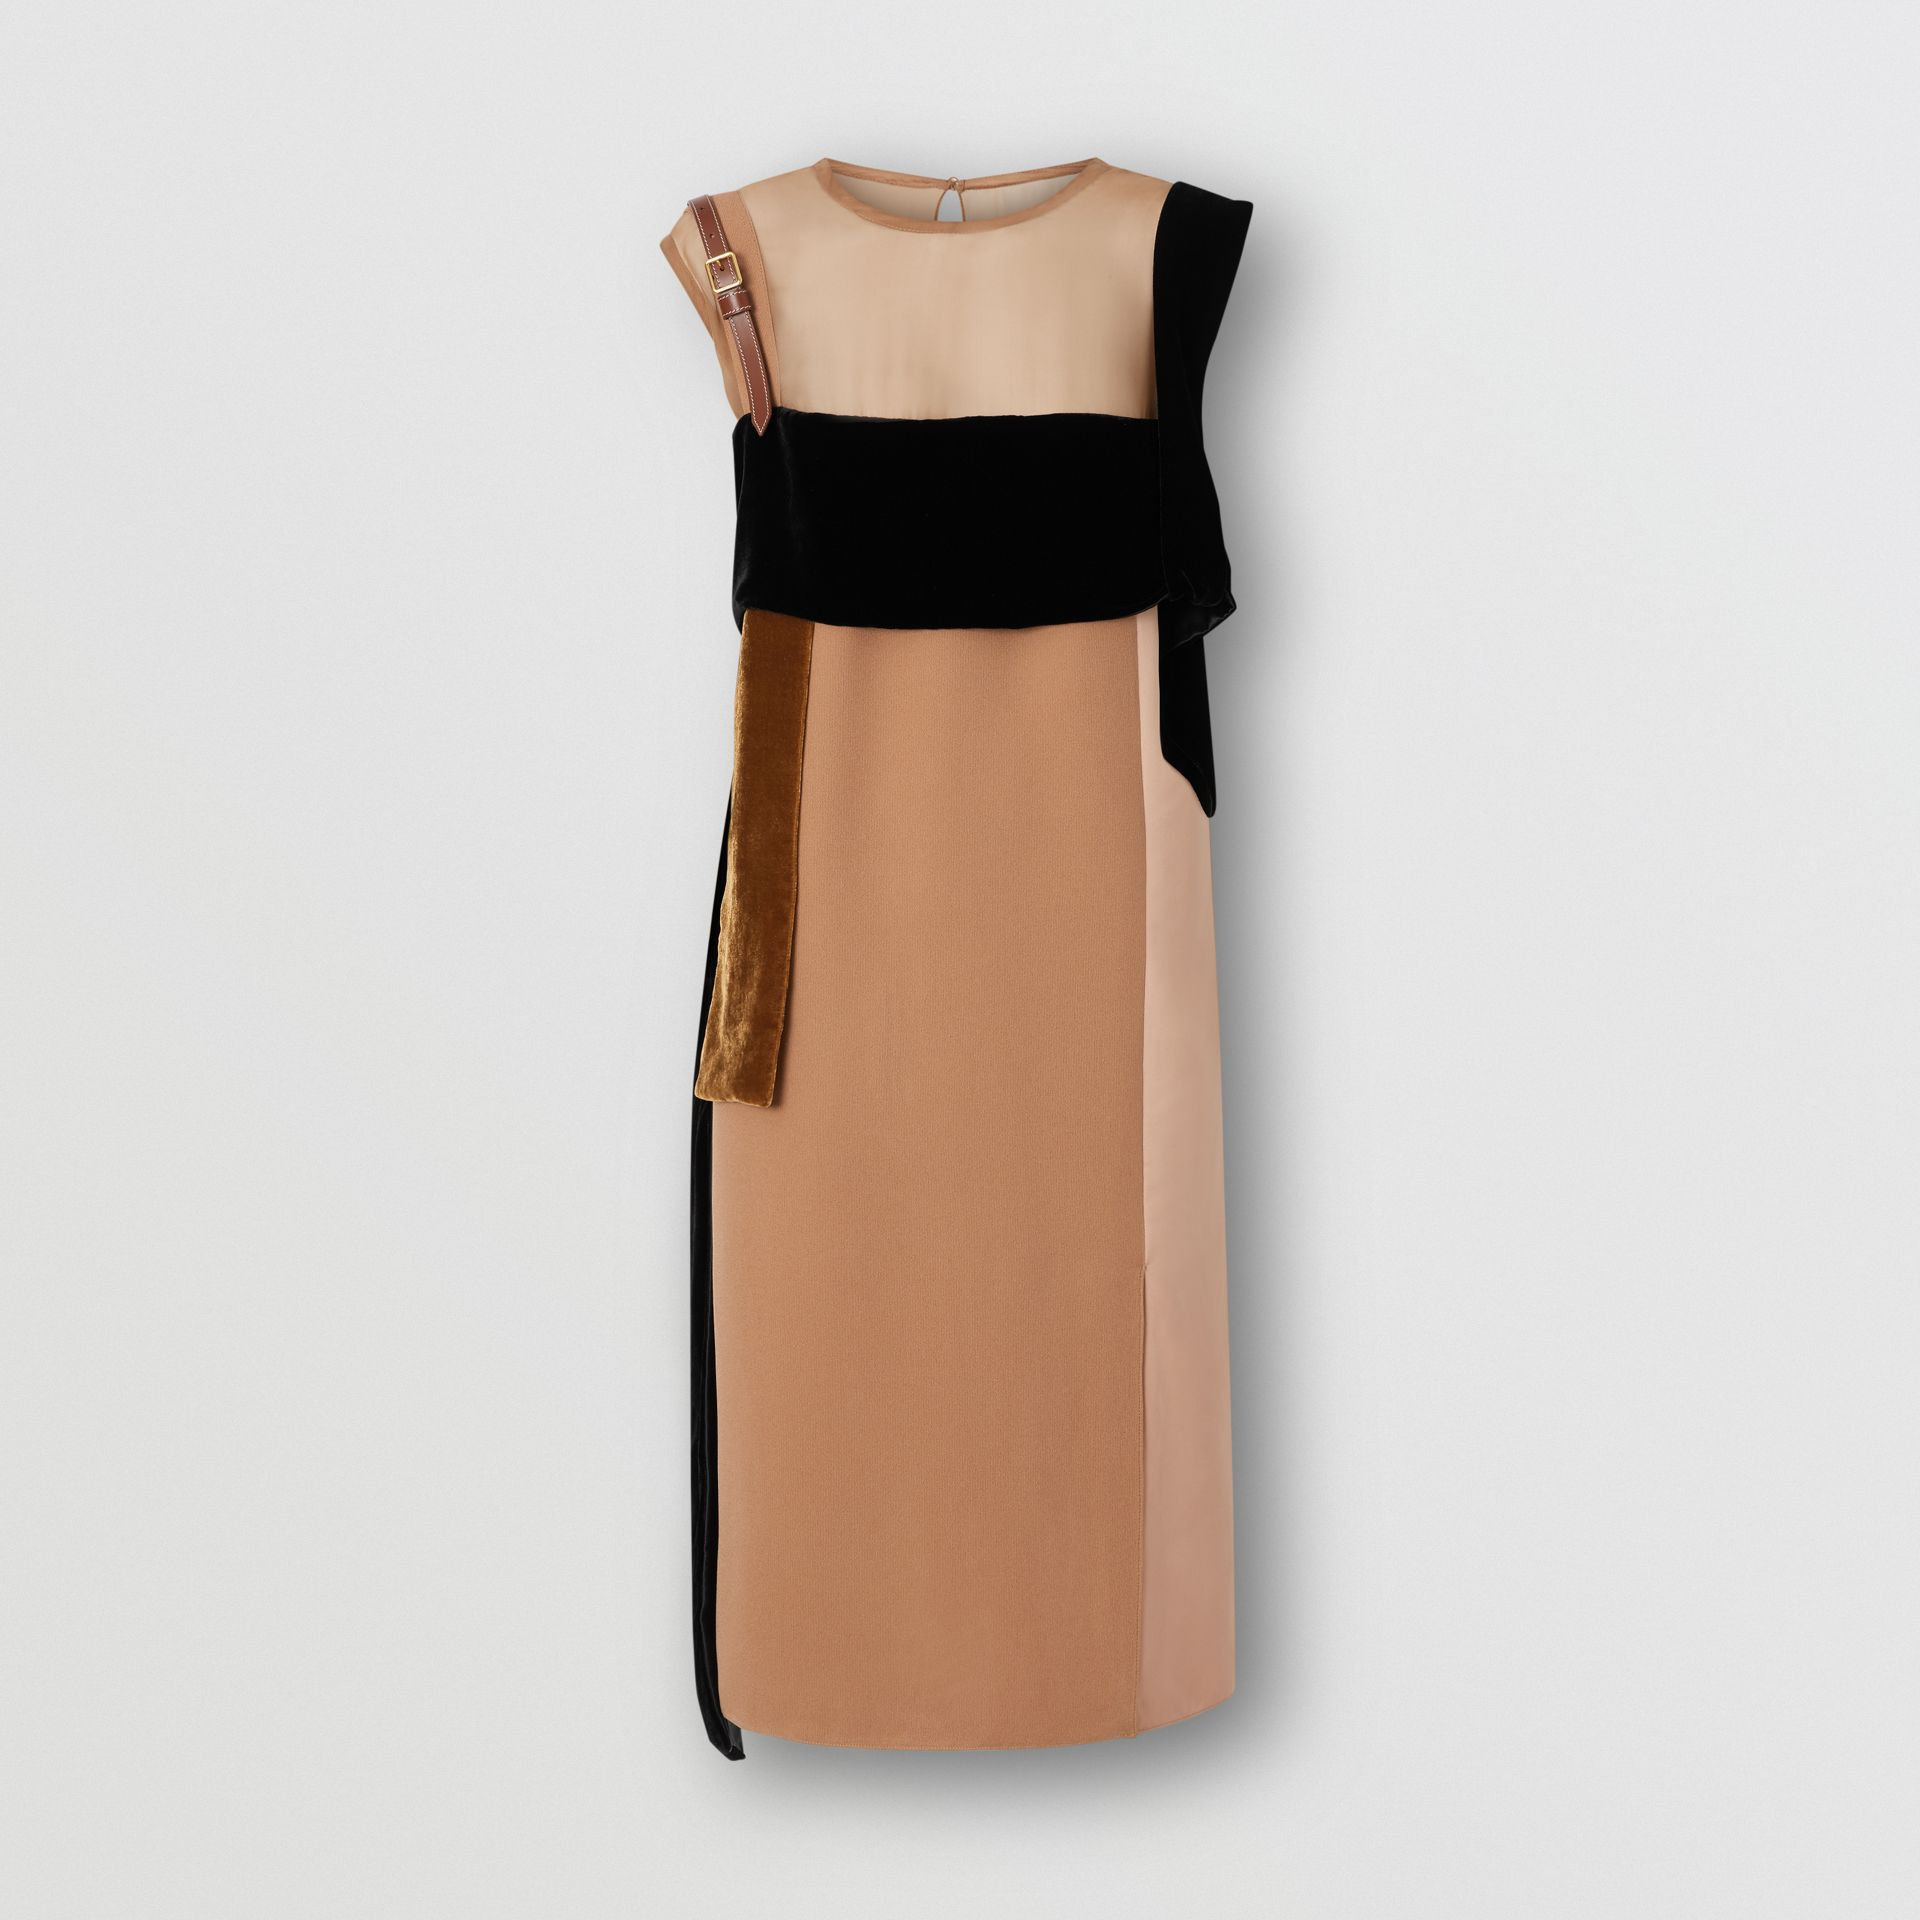 Strap Detail Panelled Silk and Velvet Dress in Biscuit - Women | Burberry Singapore - gallery image 3